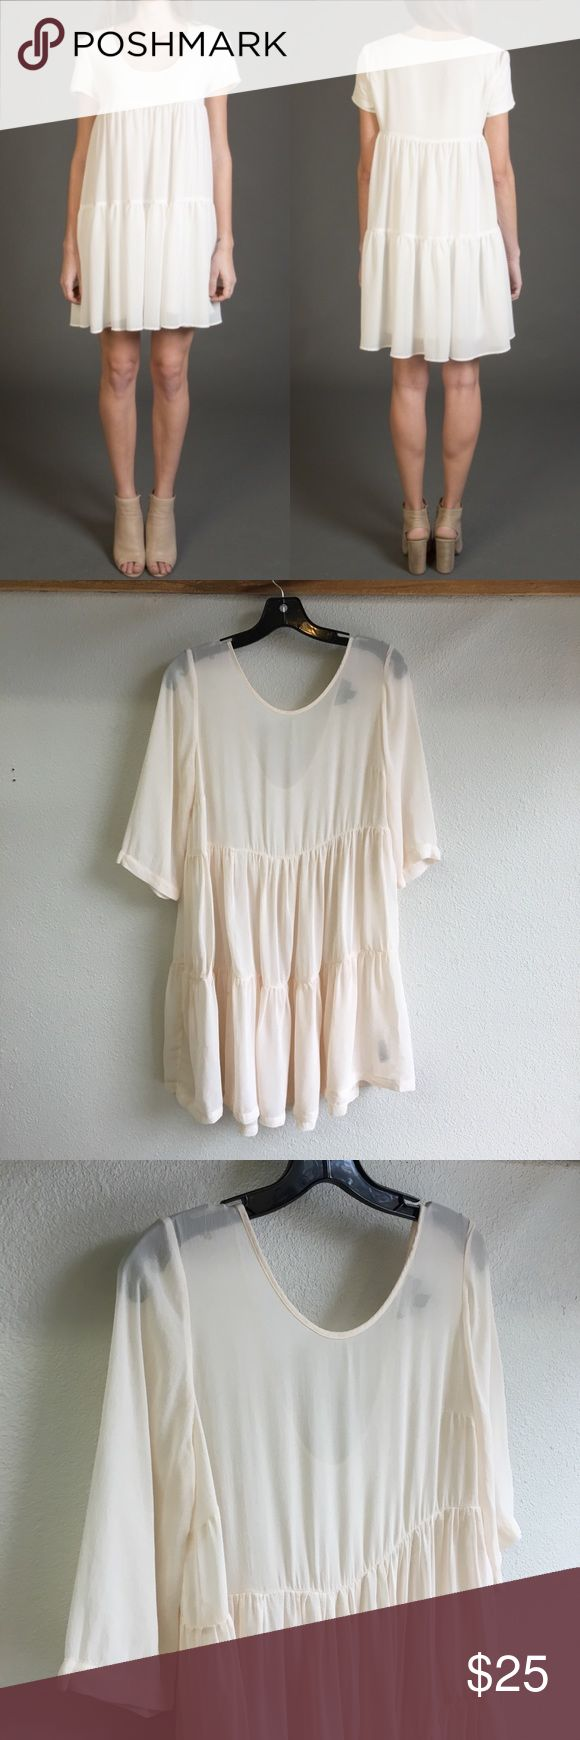 TopShop tiered boho sheer pastel dress Markings as shown in picture, located at the bottom right corner and left. Not noticeable because of the ruffle. Size 4. Sheer. 33inches long. Blush color Topshop Dresses